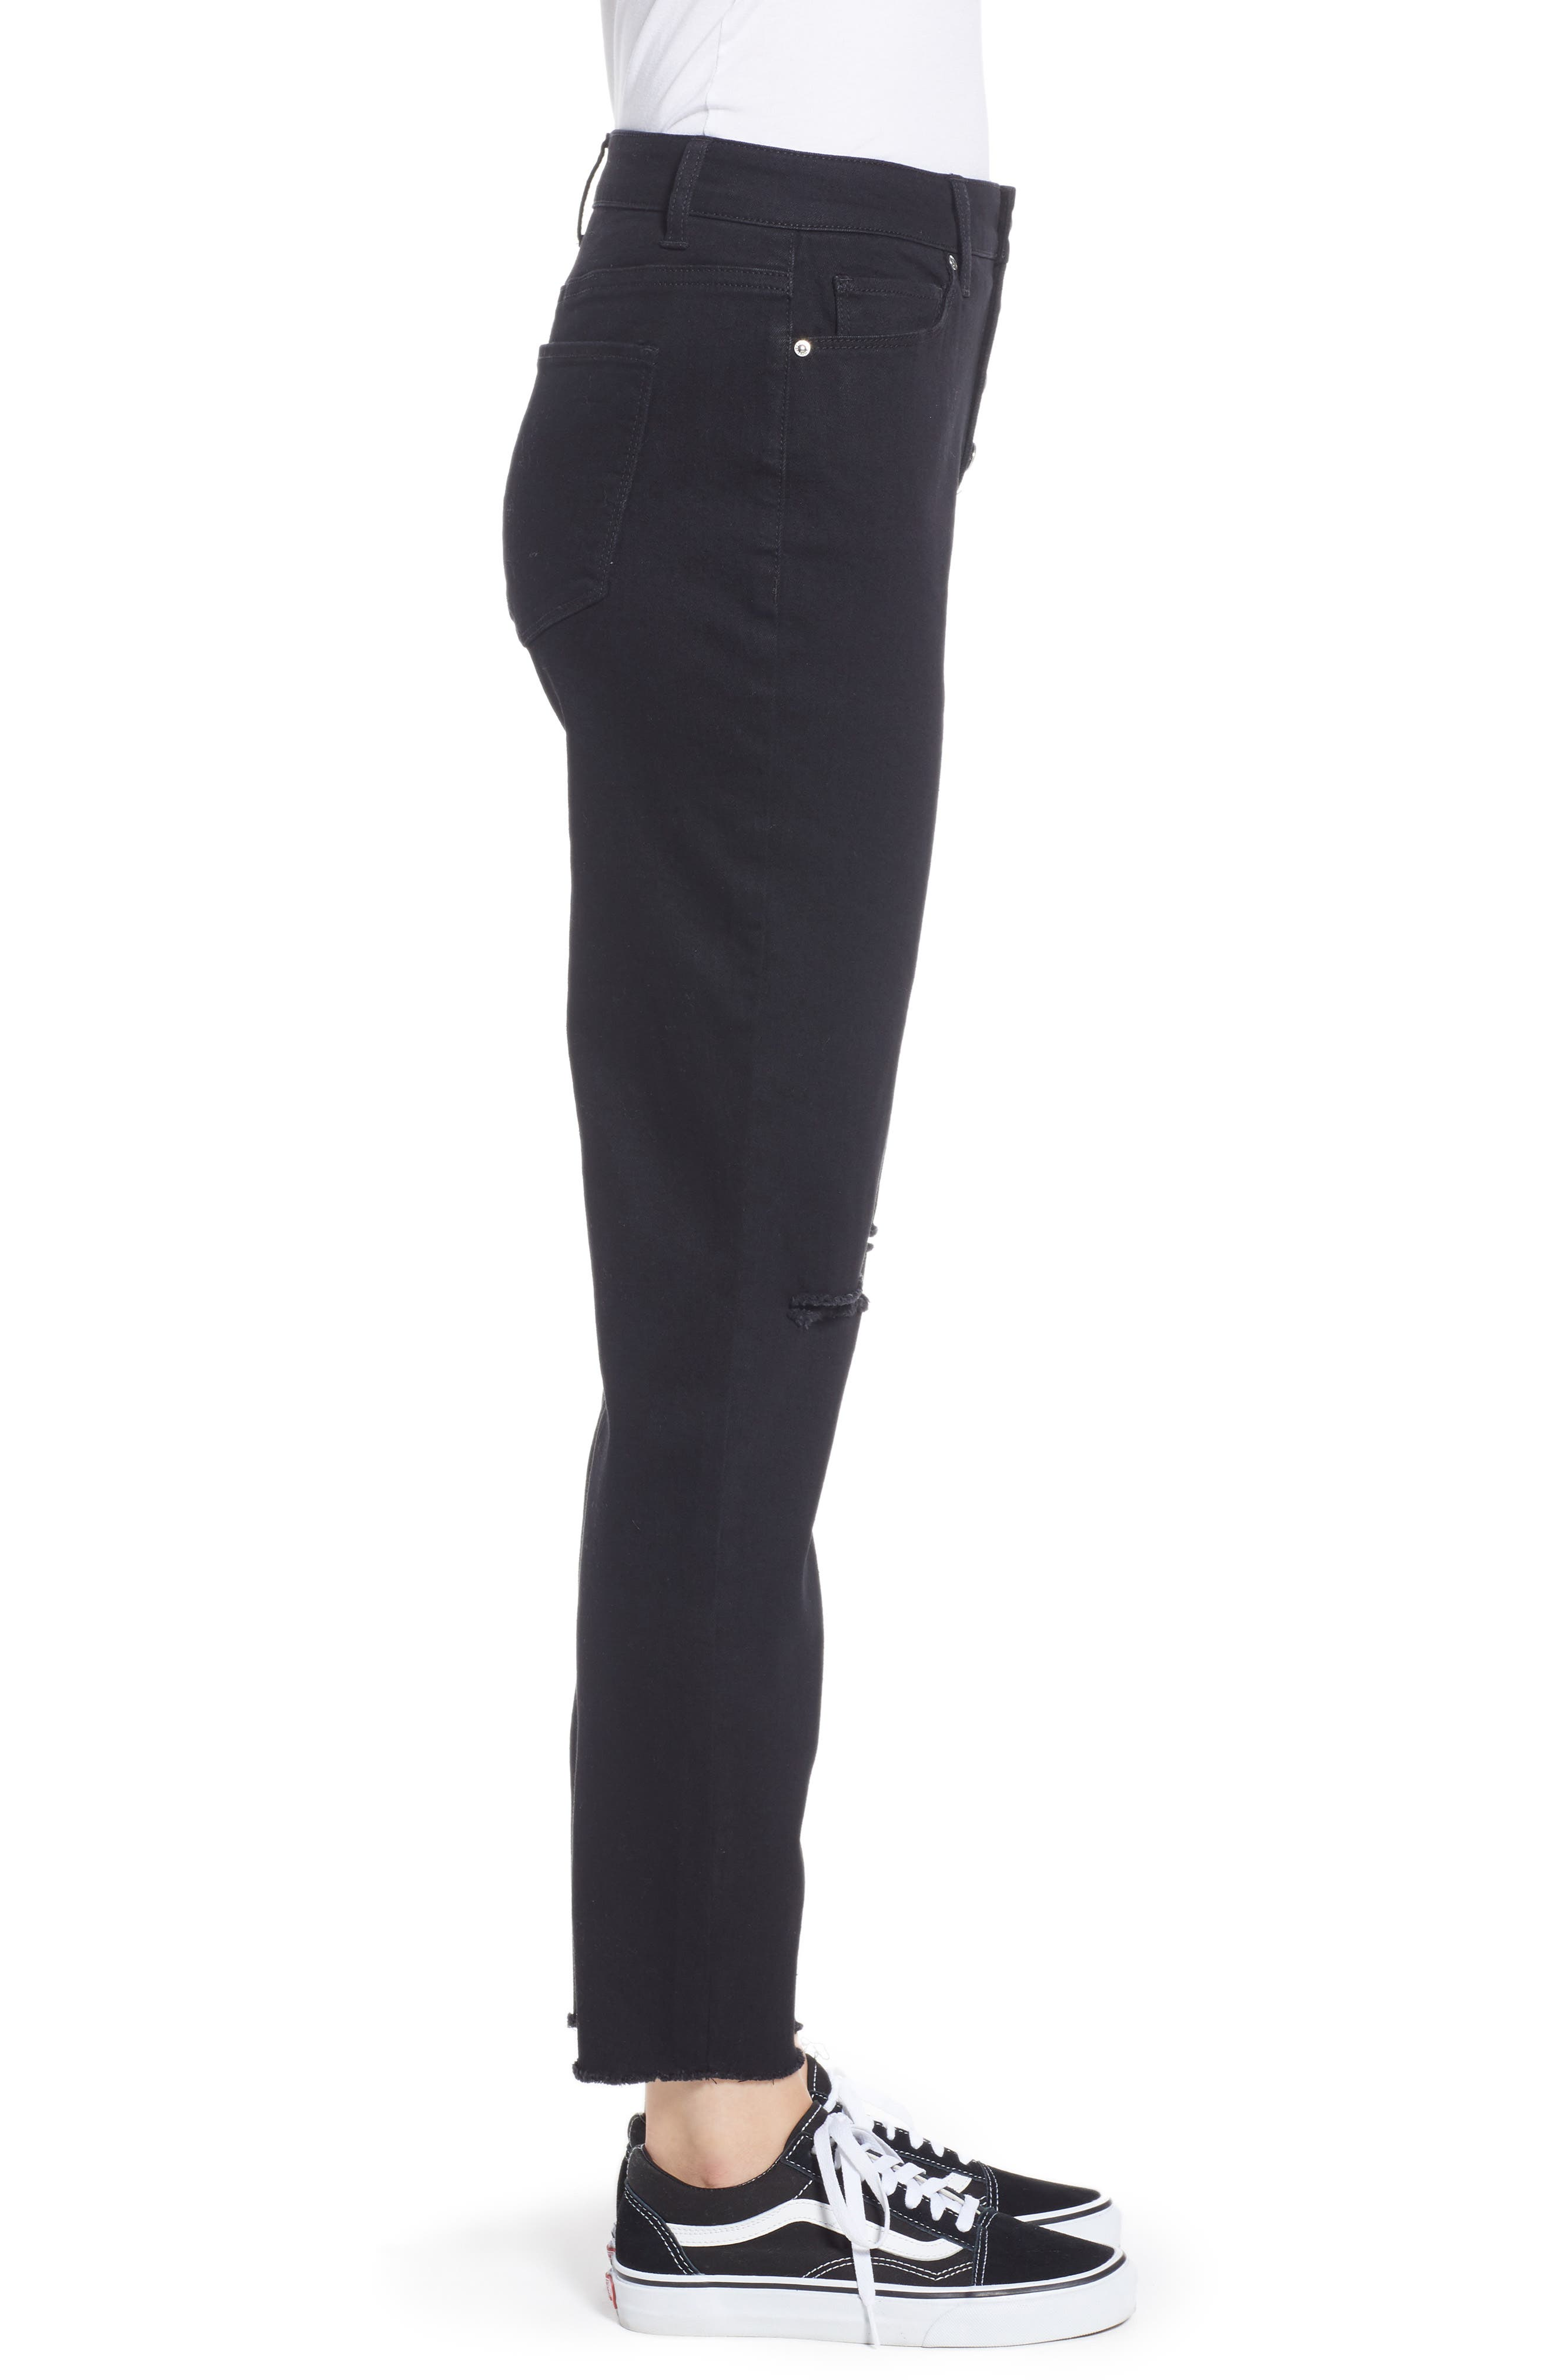 Ripped High Waist Ankle Skinny Jeans,                             Alternate thumbnail 3, color,                             BLACK RINSE